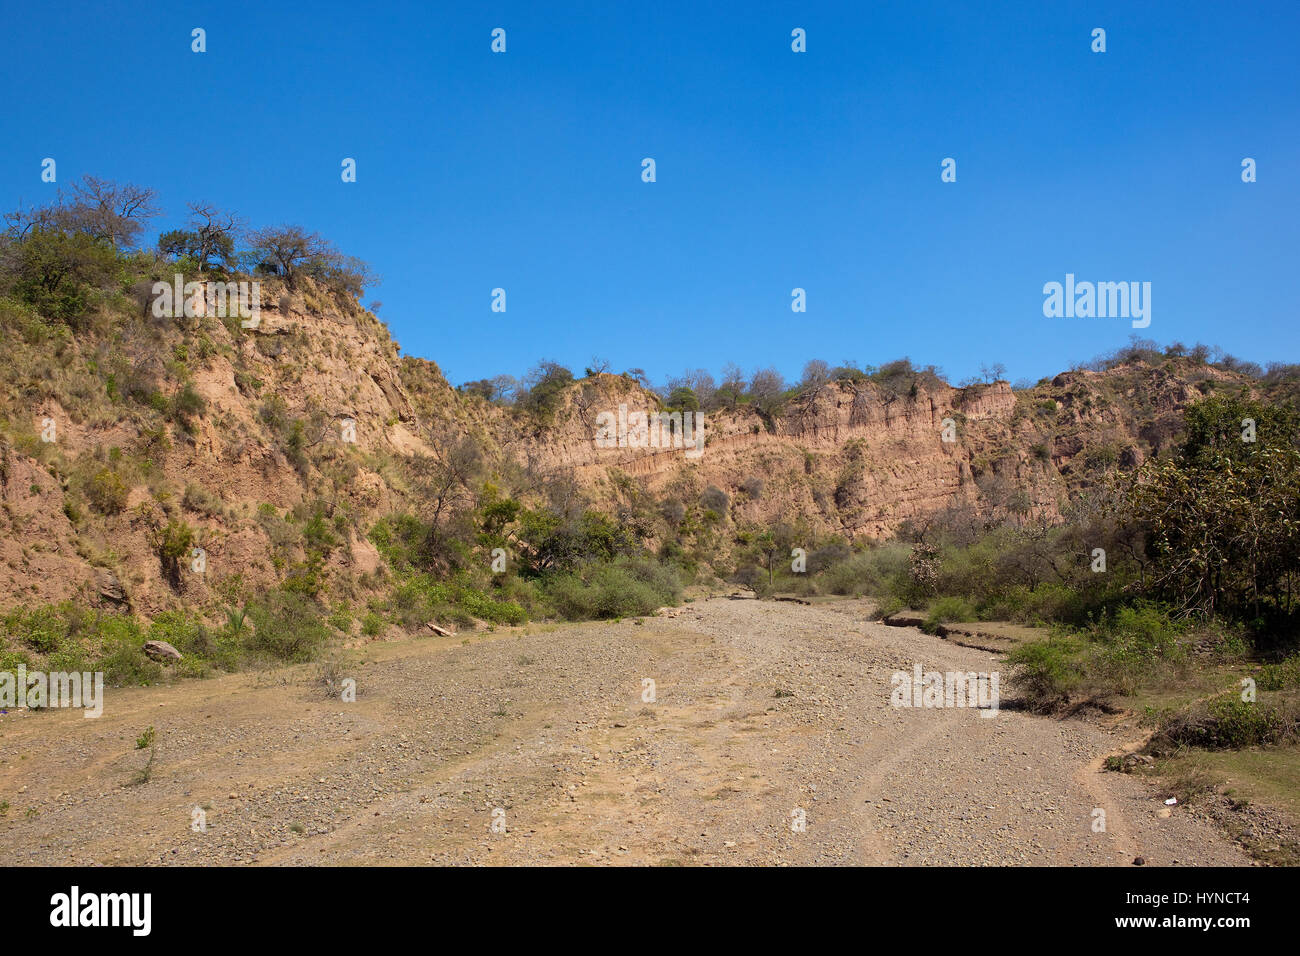 a dry river bed with orange sandy cliffs in the nature reserve of morni hills near chandigarh india under a blue Stock Photo